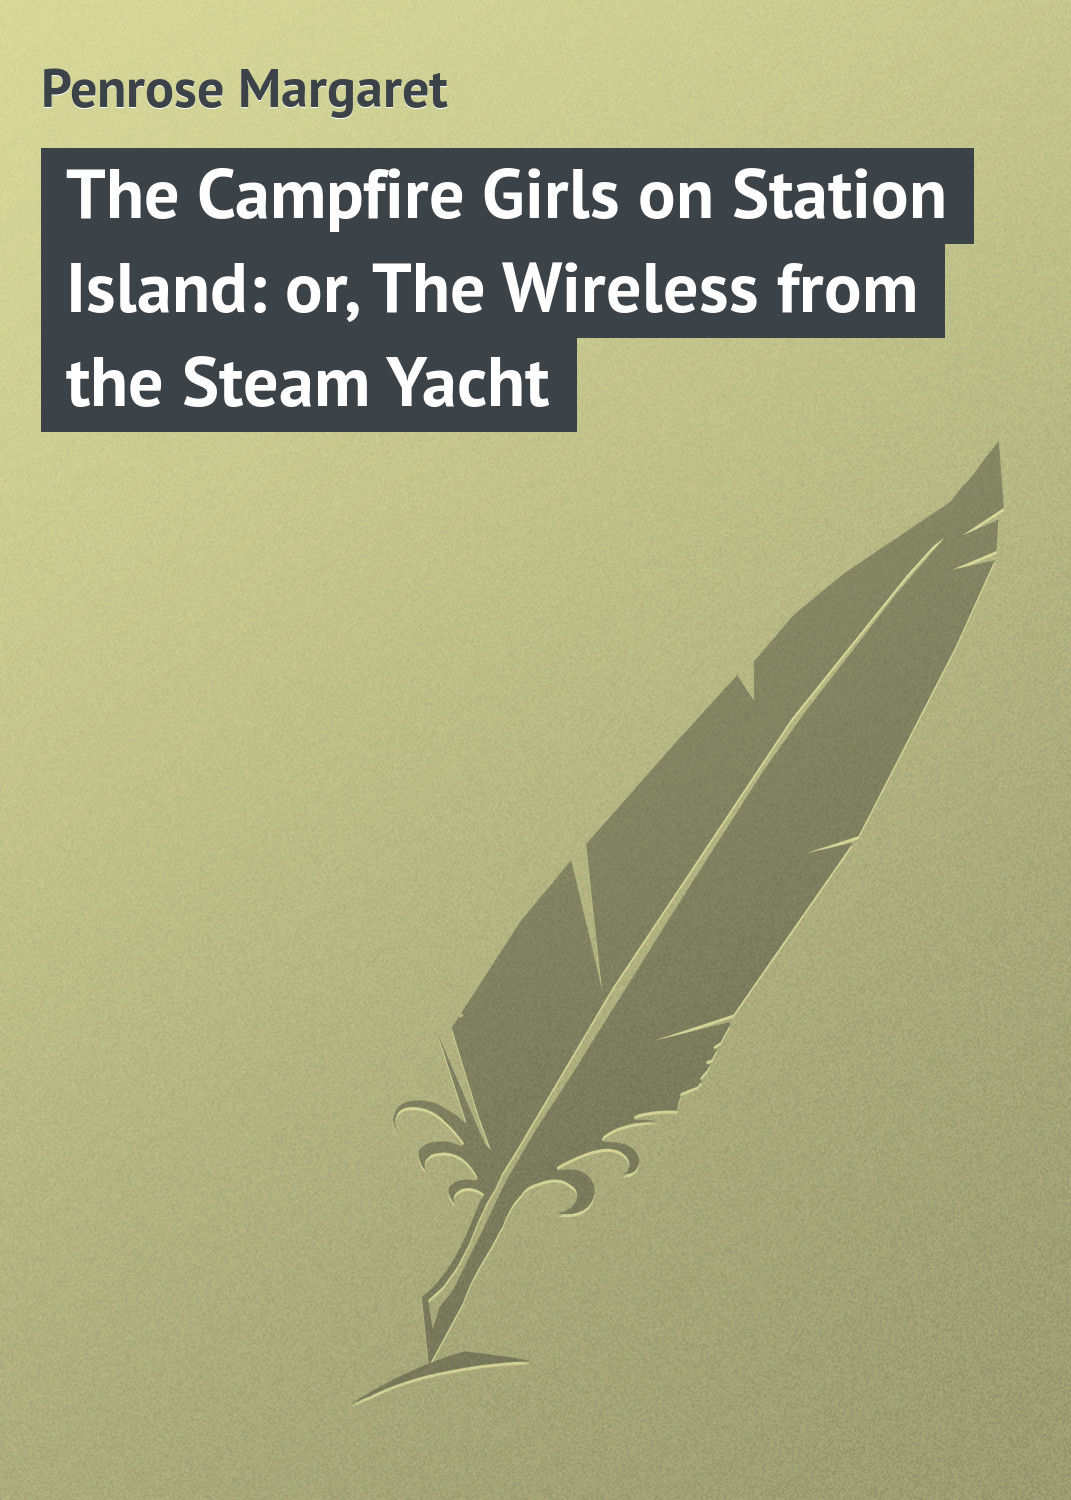 Penrose Margaret The Campfire Girls on Station Island: or, The Wireless from the Steam Yacht the floating island